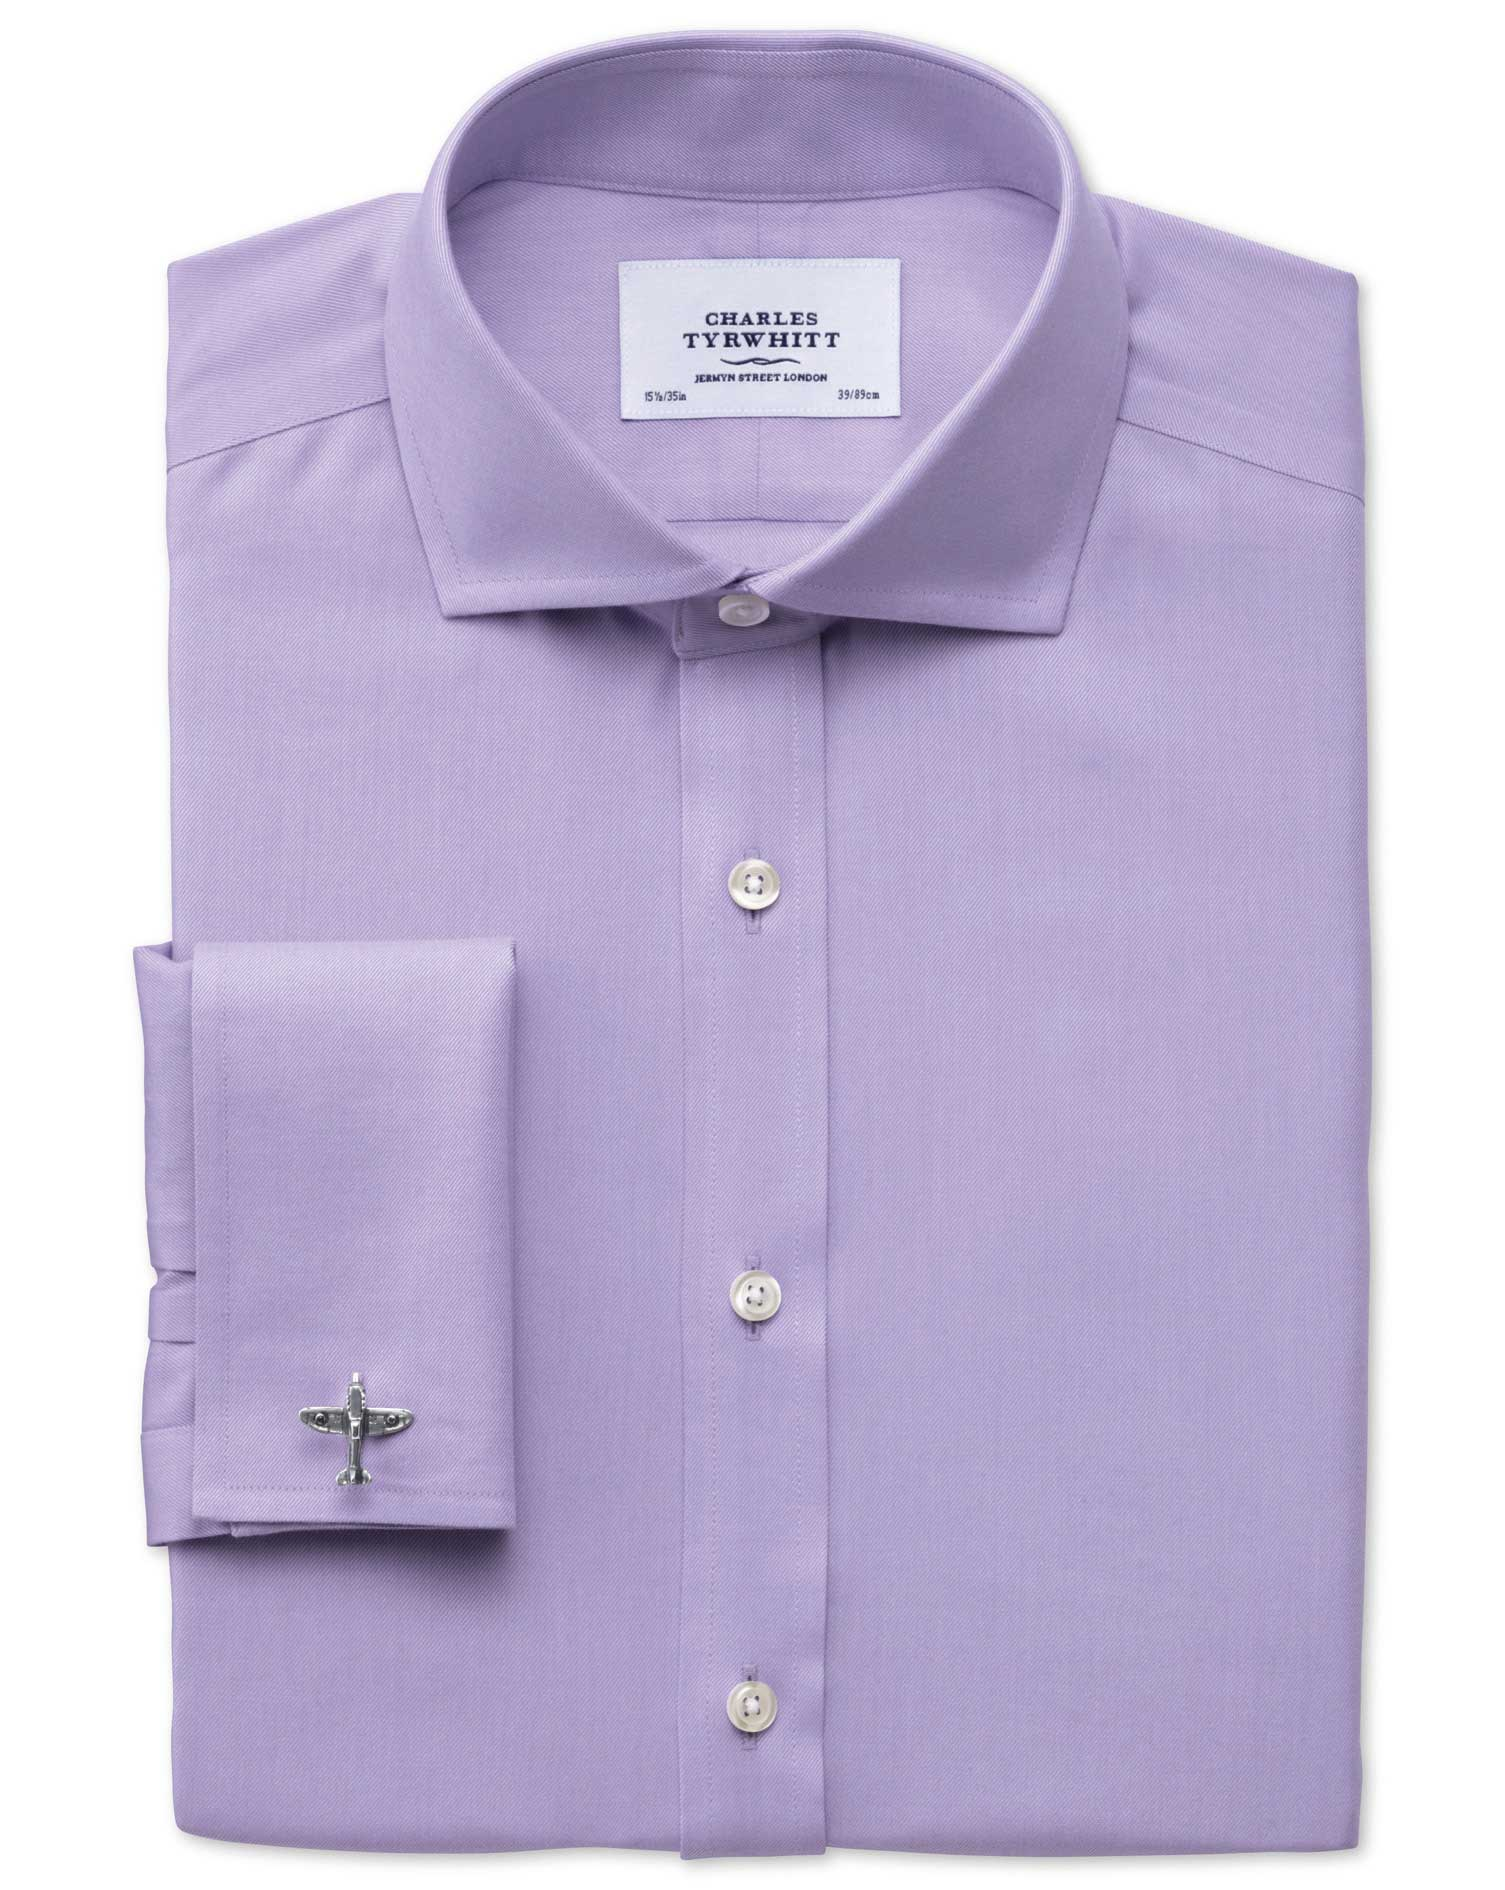 Slim Fit Cutaway Collar Non-Iron Twill Lilac Cotton Formal Shirt Double Cuff Size 16/35 by Charles T